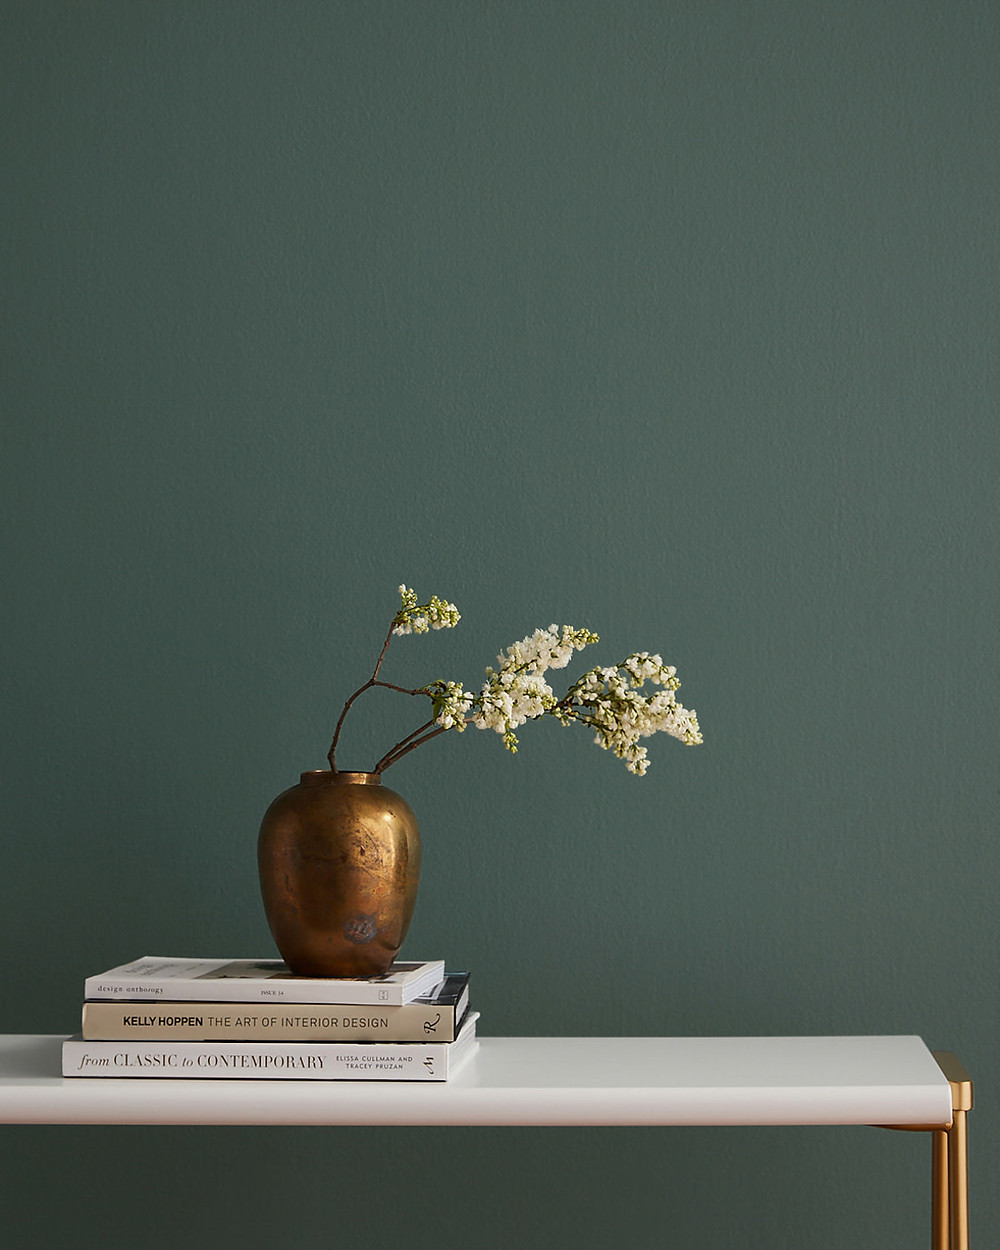 Current Moody moody green wall paint with brass planter and floral arrangement